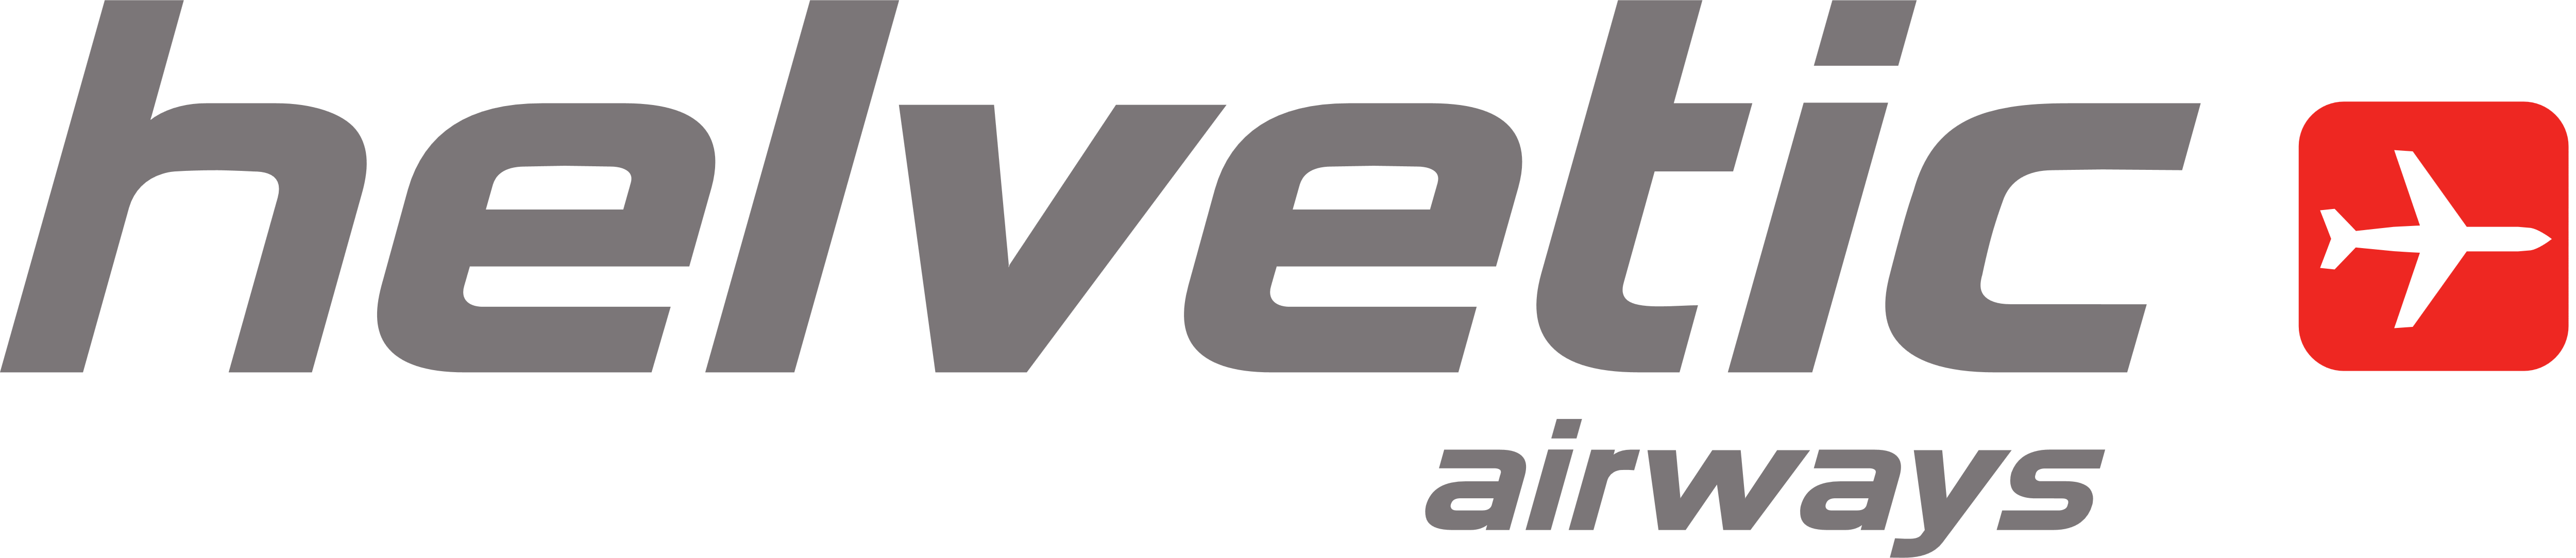 Helvetic Airways – Logos Download